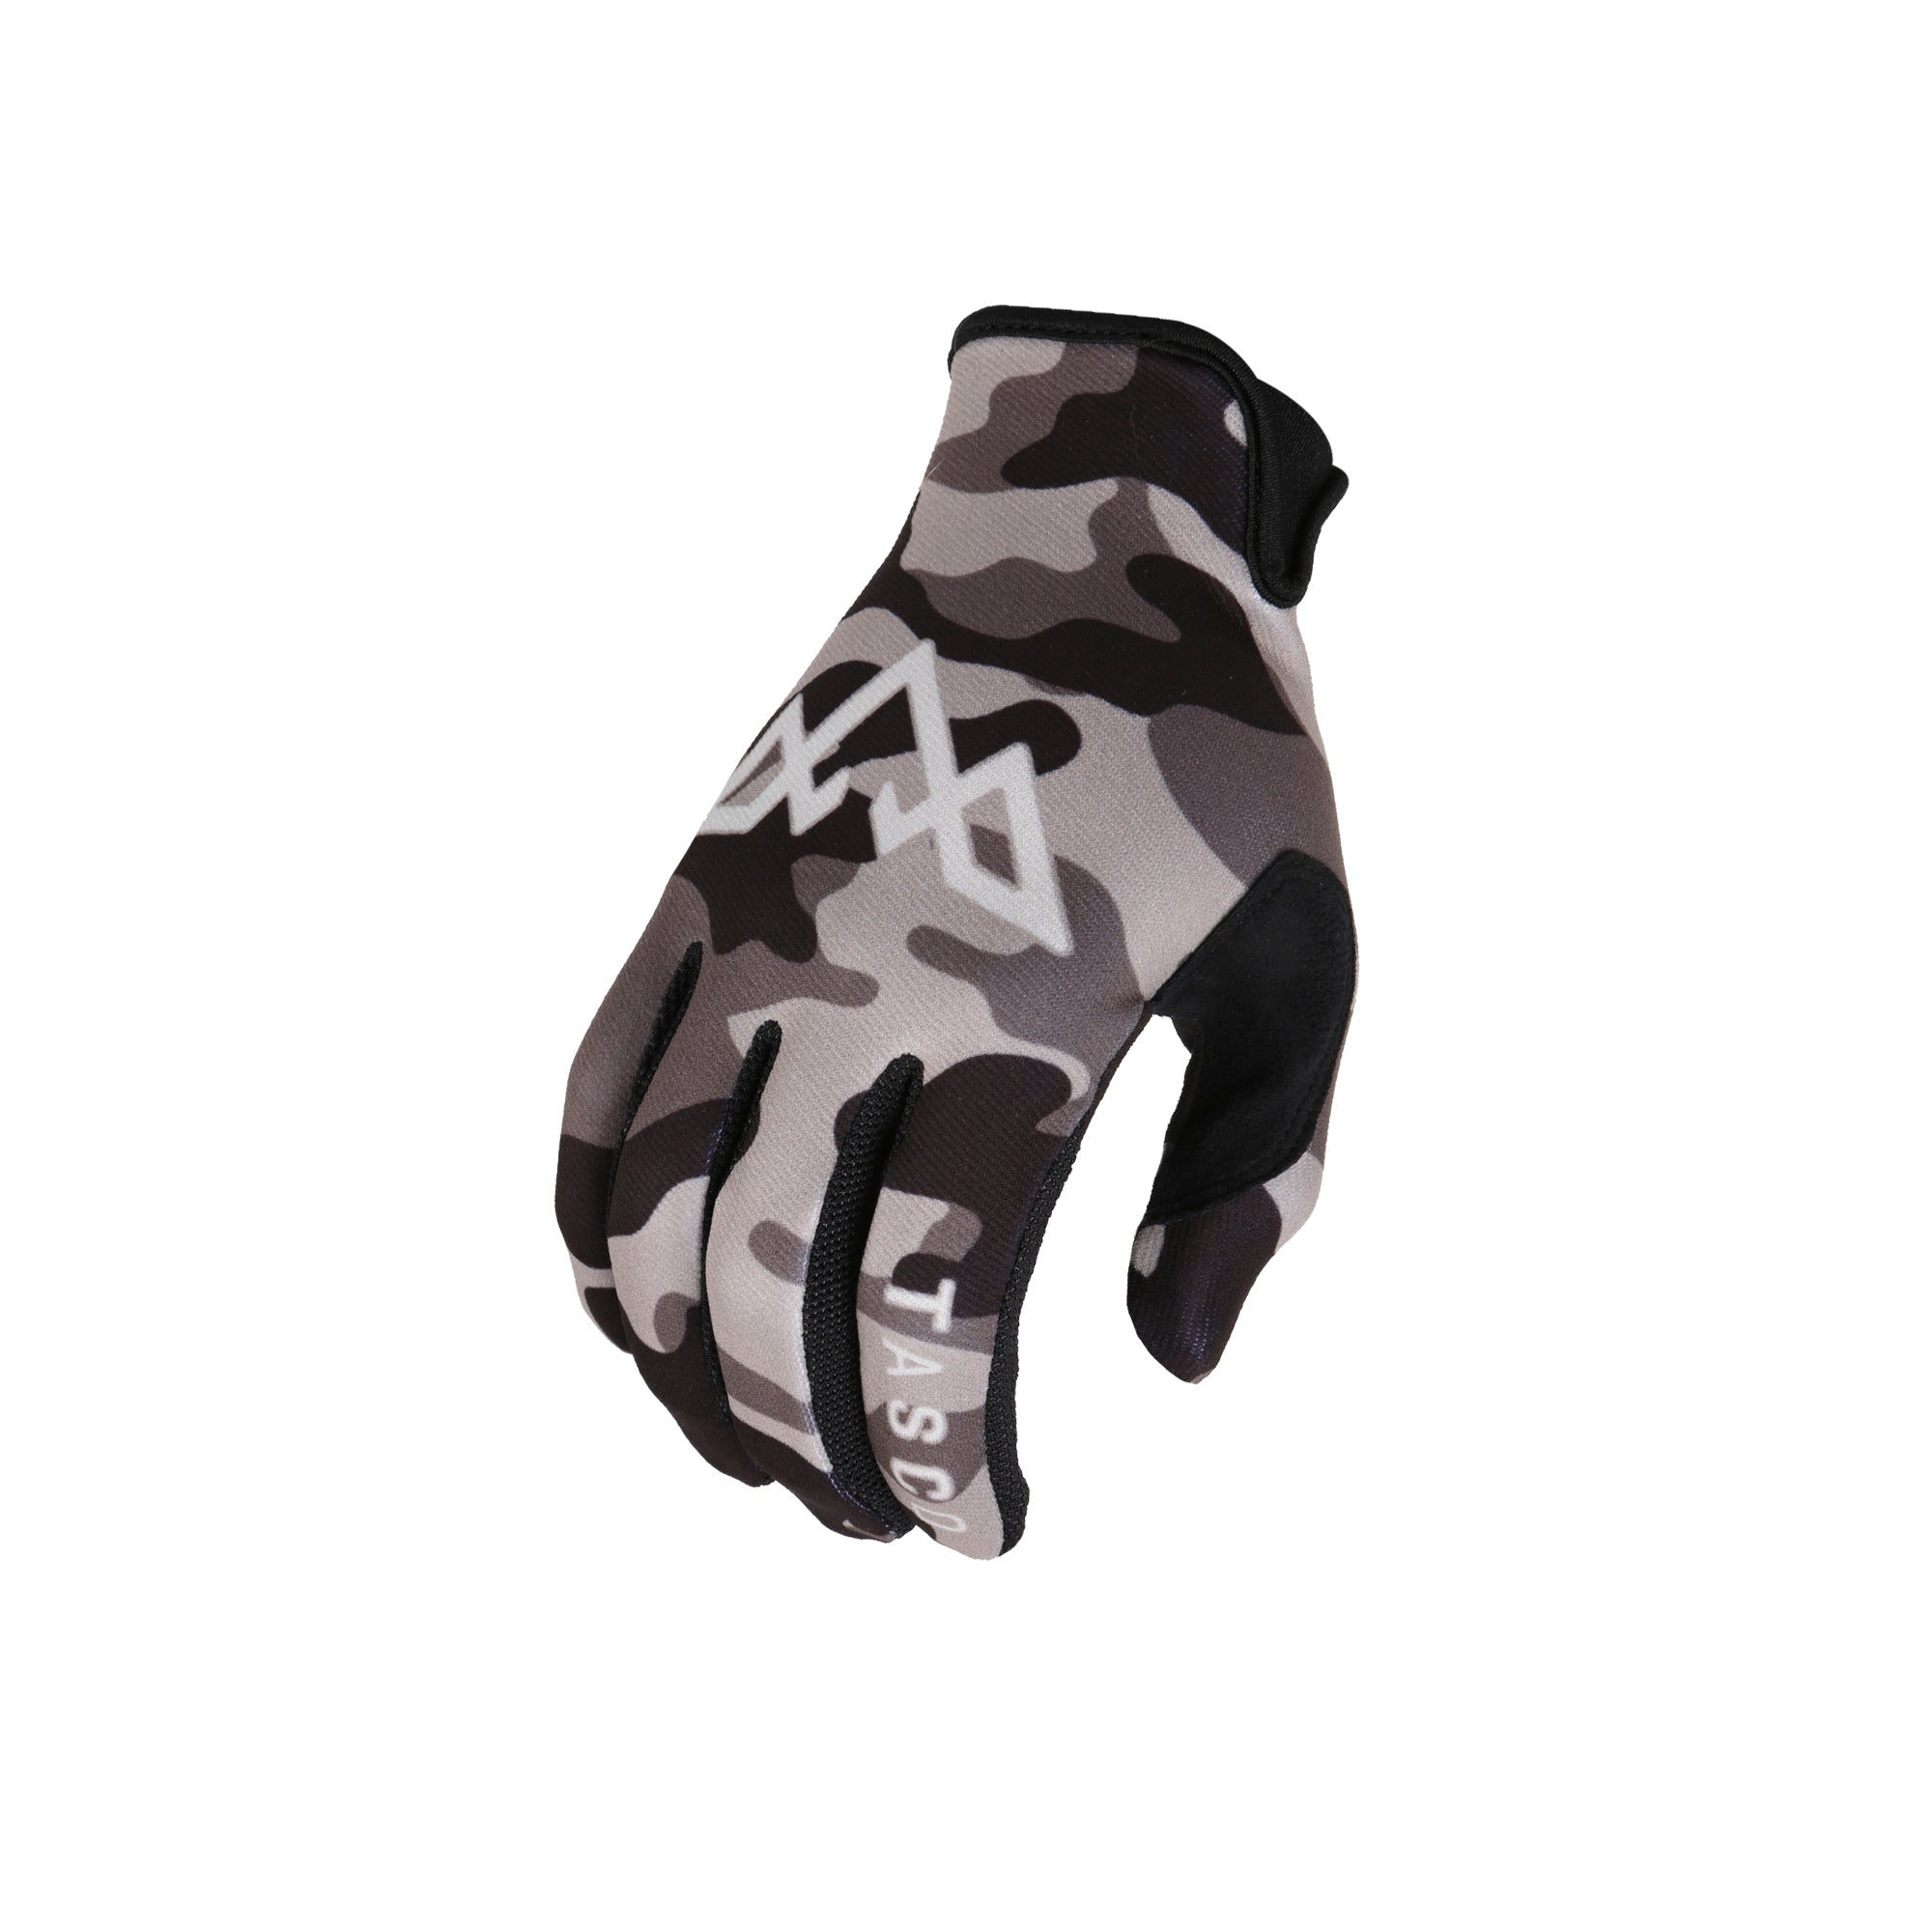 Ridgeline MTB Gloves - Surplus (Grey Camo)